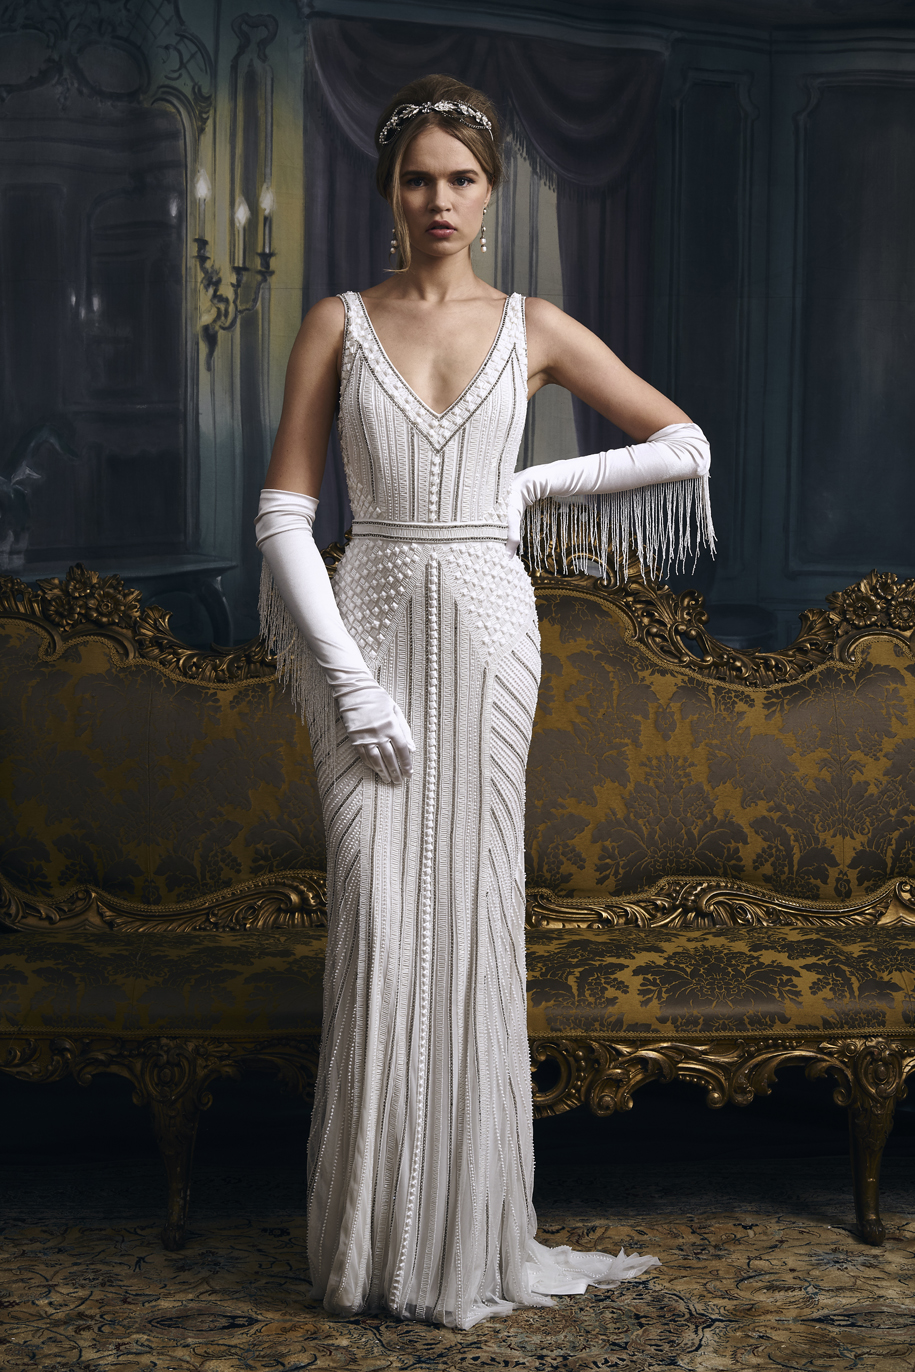 vintage inspired wedding dresses - Velma Kelly